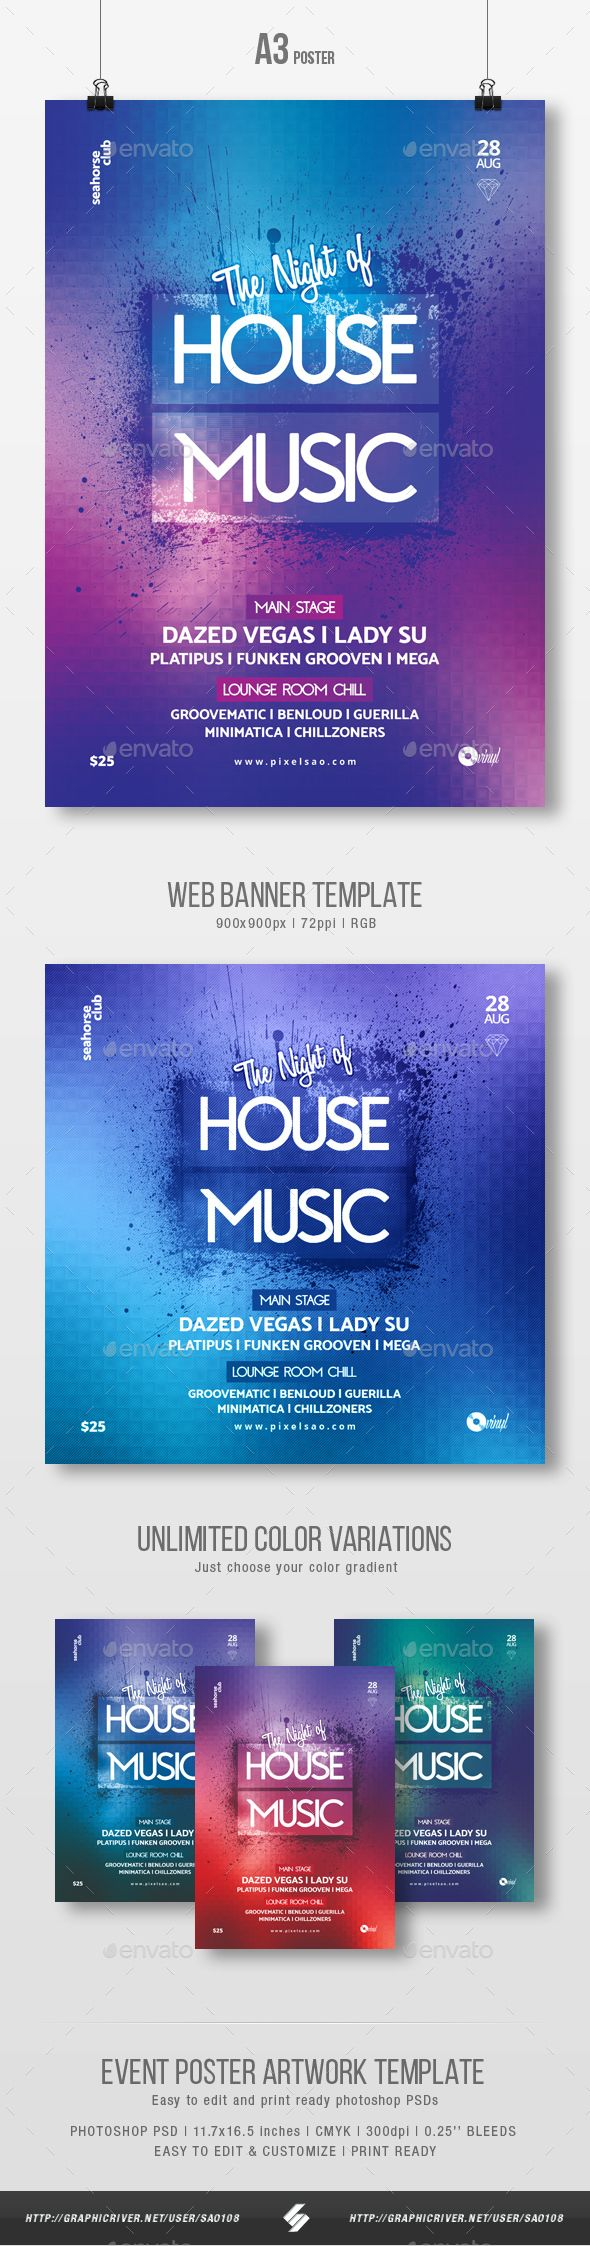 #House #Music #Party Flyer / Poster Template A3 - Clubs & Parties Events